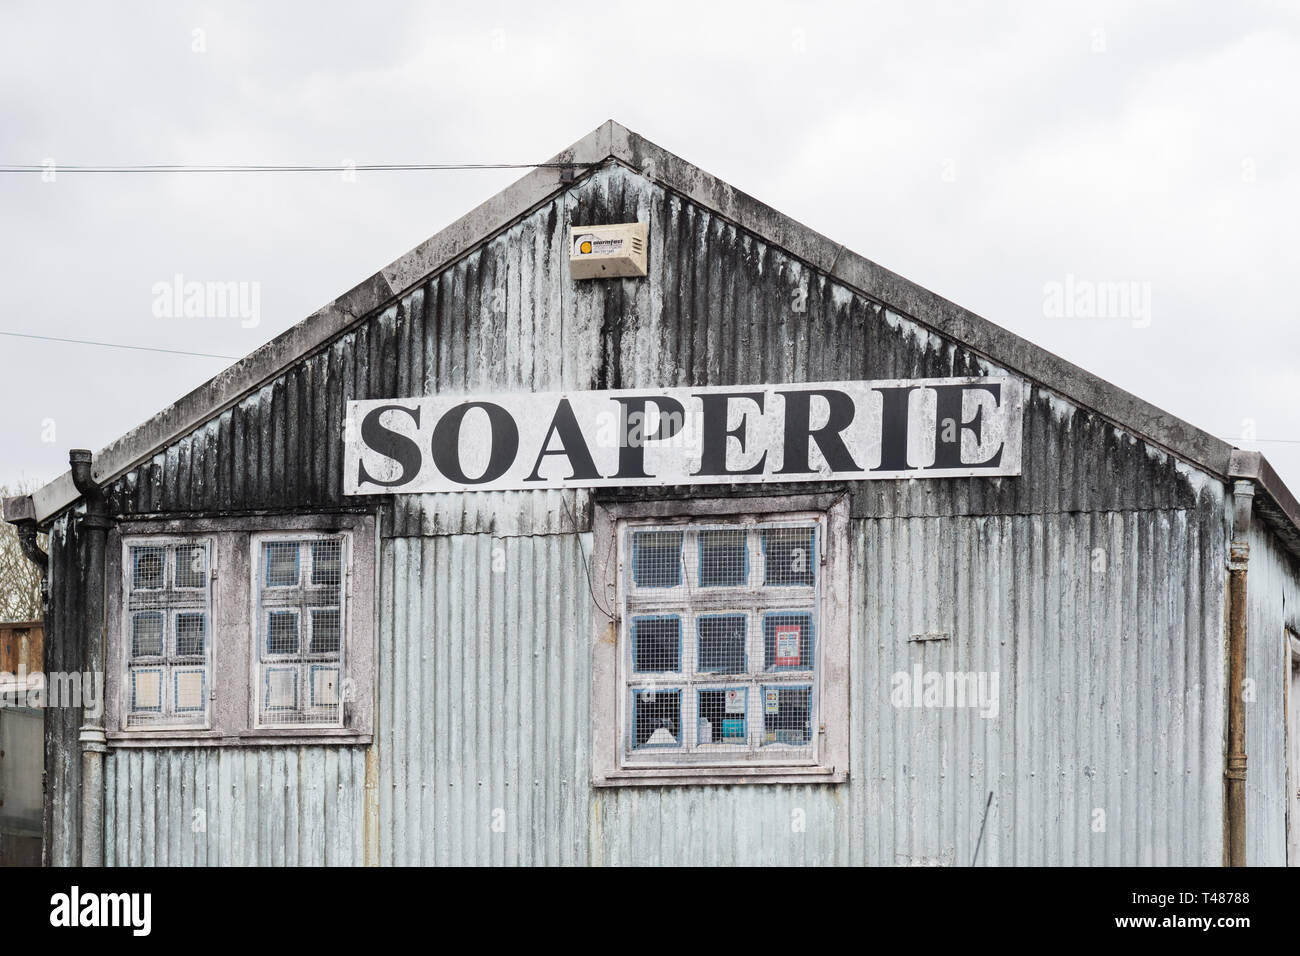 The Caurnie Soaperie - the worlds oldest cold process soapmaker - Kirkintilloch, Scotland, UK - Stock Image